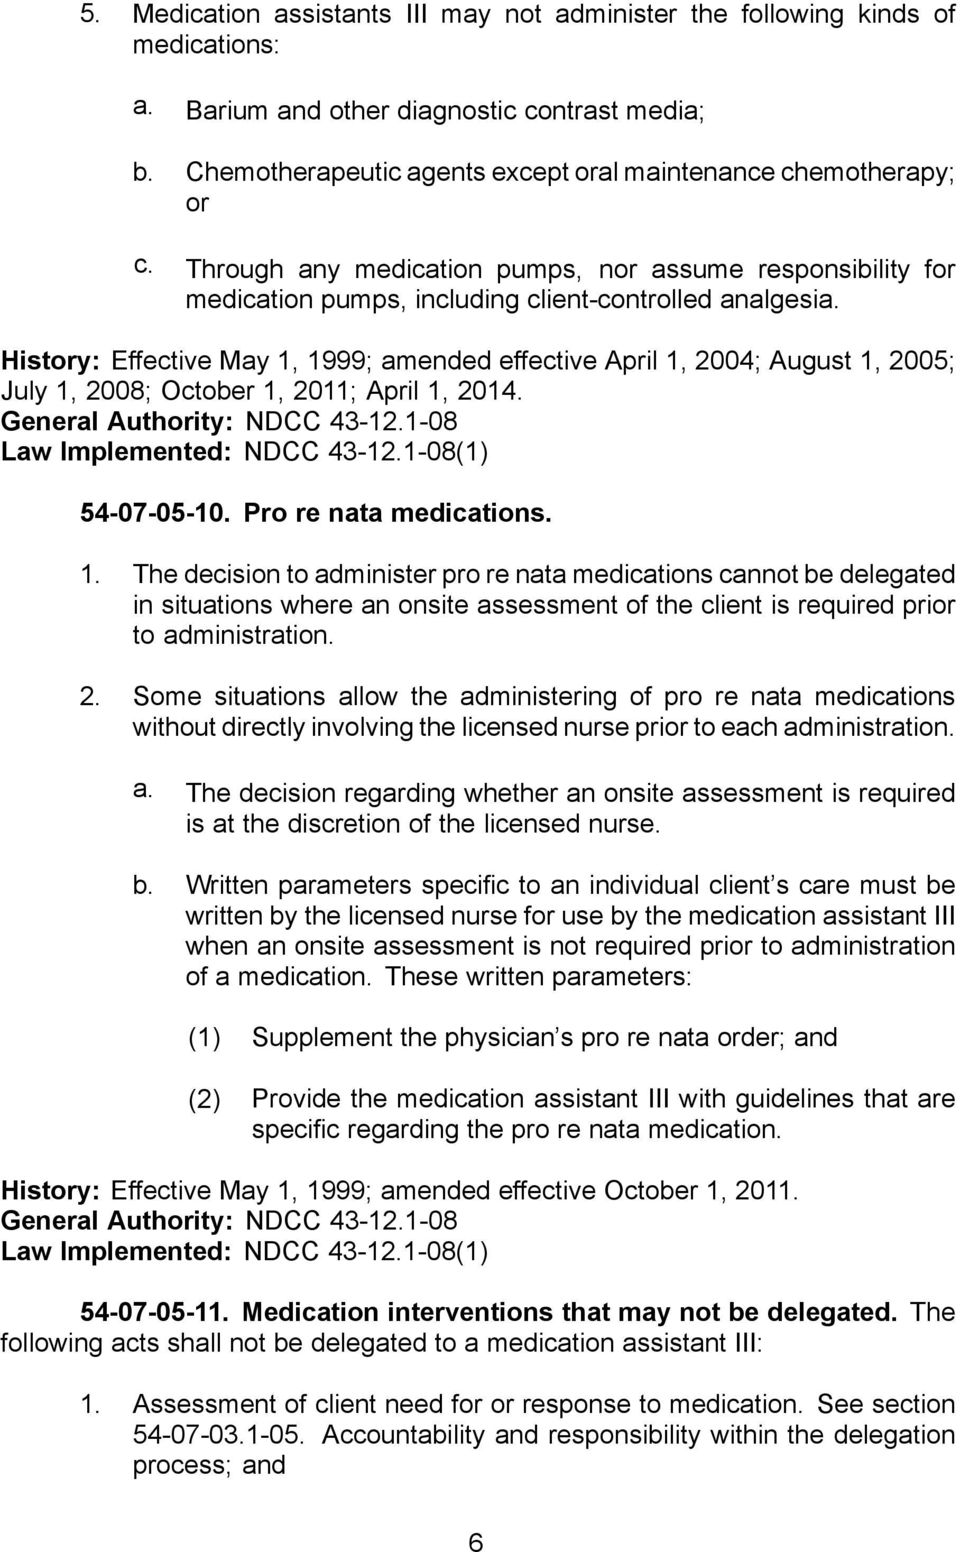 History: Effective May 1, 1999; amended effective April 1, 2004; August 1, 2005; July 1, 2008; October 1, 2011; April 1, 2014. 54-07-05-10. Pro re nata medications. 1. The decision to administer pro re nata medications cannot be delegated in situations where an onsite assessment of the client is required prior to administration.